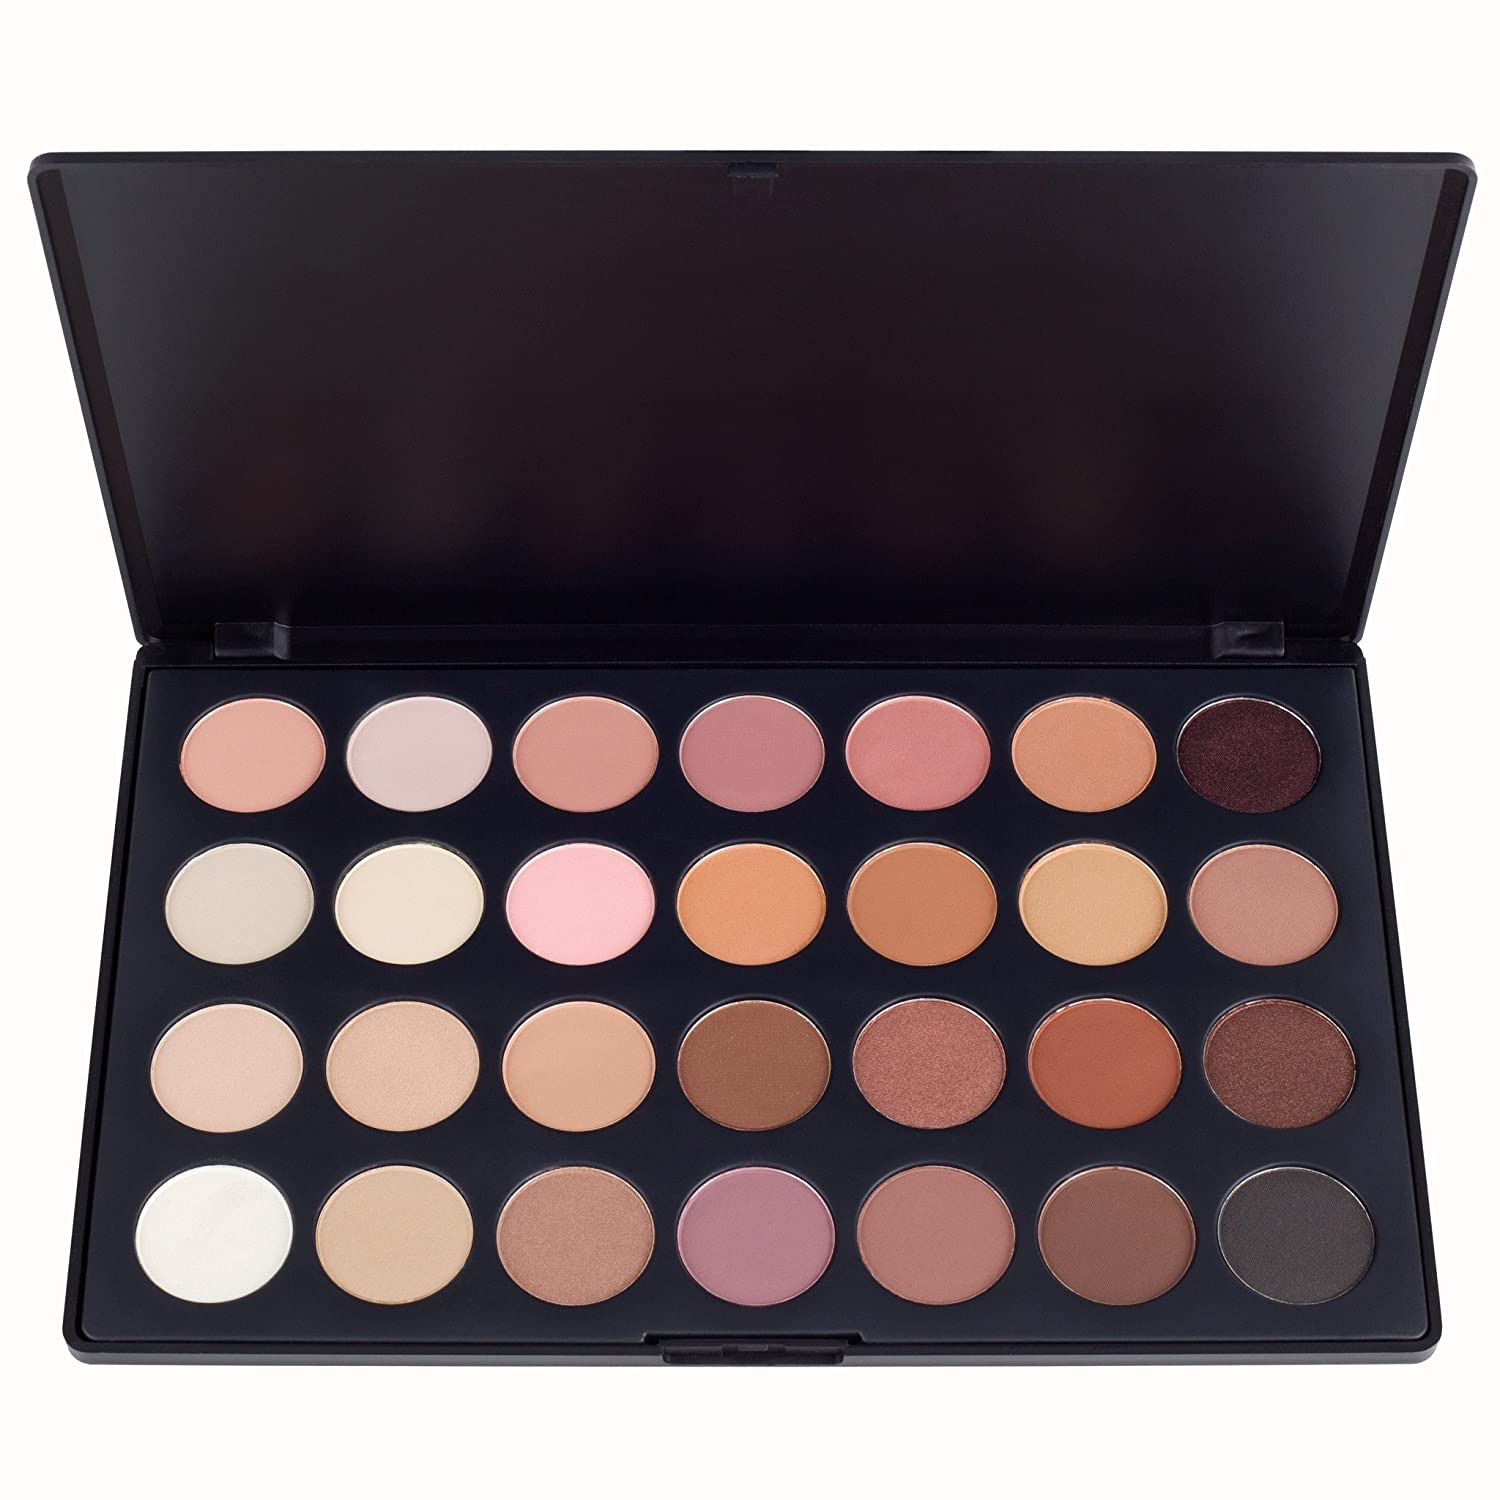 Coastal Scents 28 Color Eyeshadow Palette, Neutral